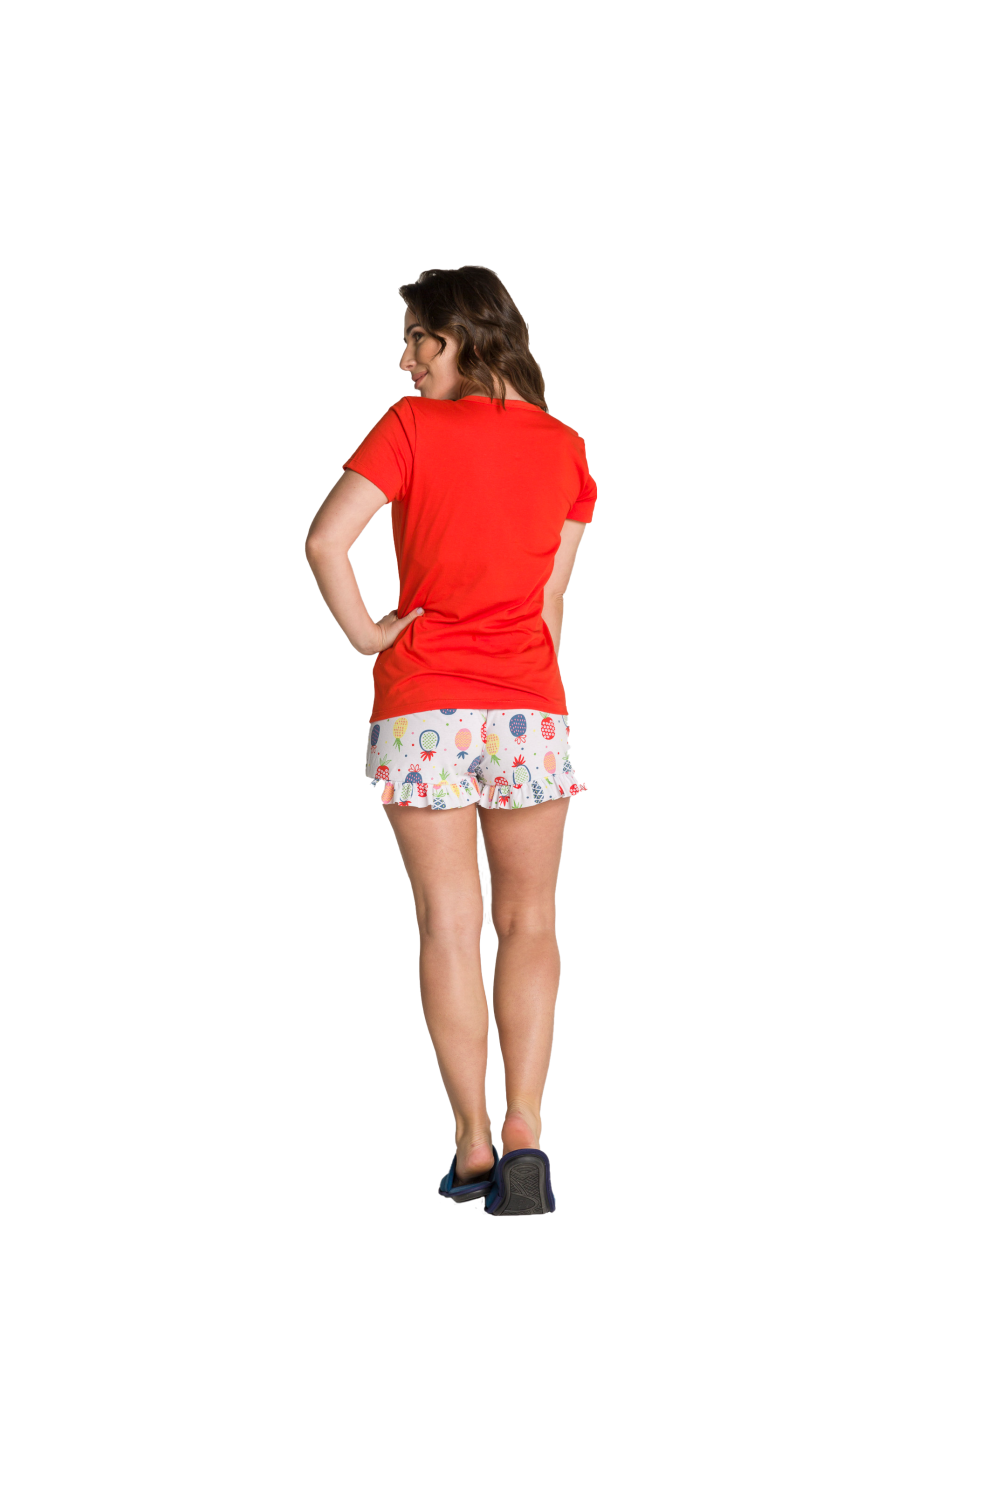 015/B - Pijama Adulto Feminino So Fresh com Babado